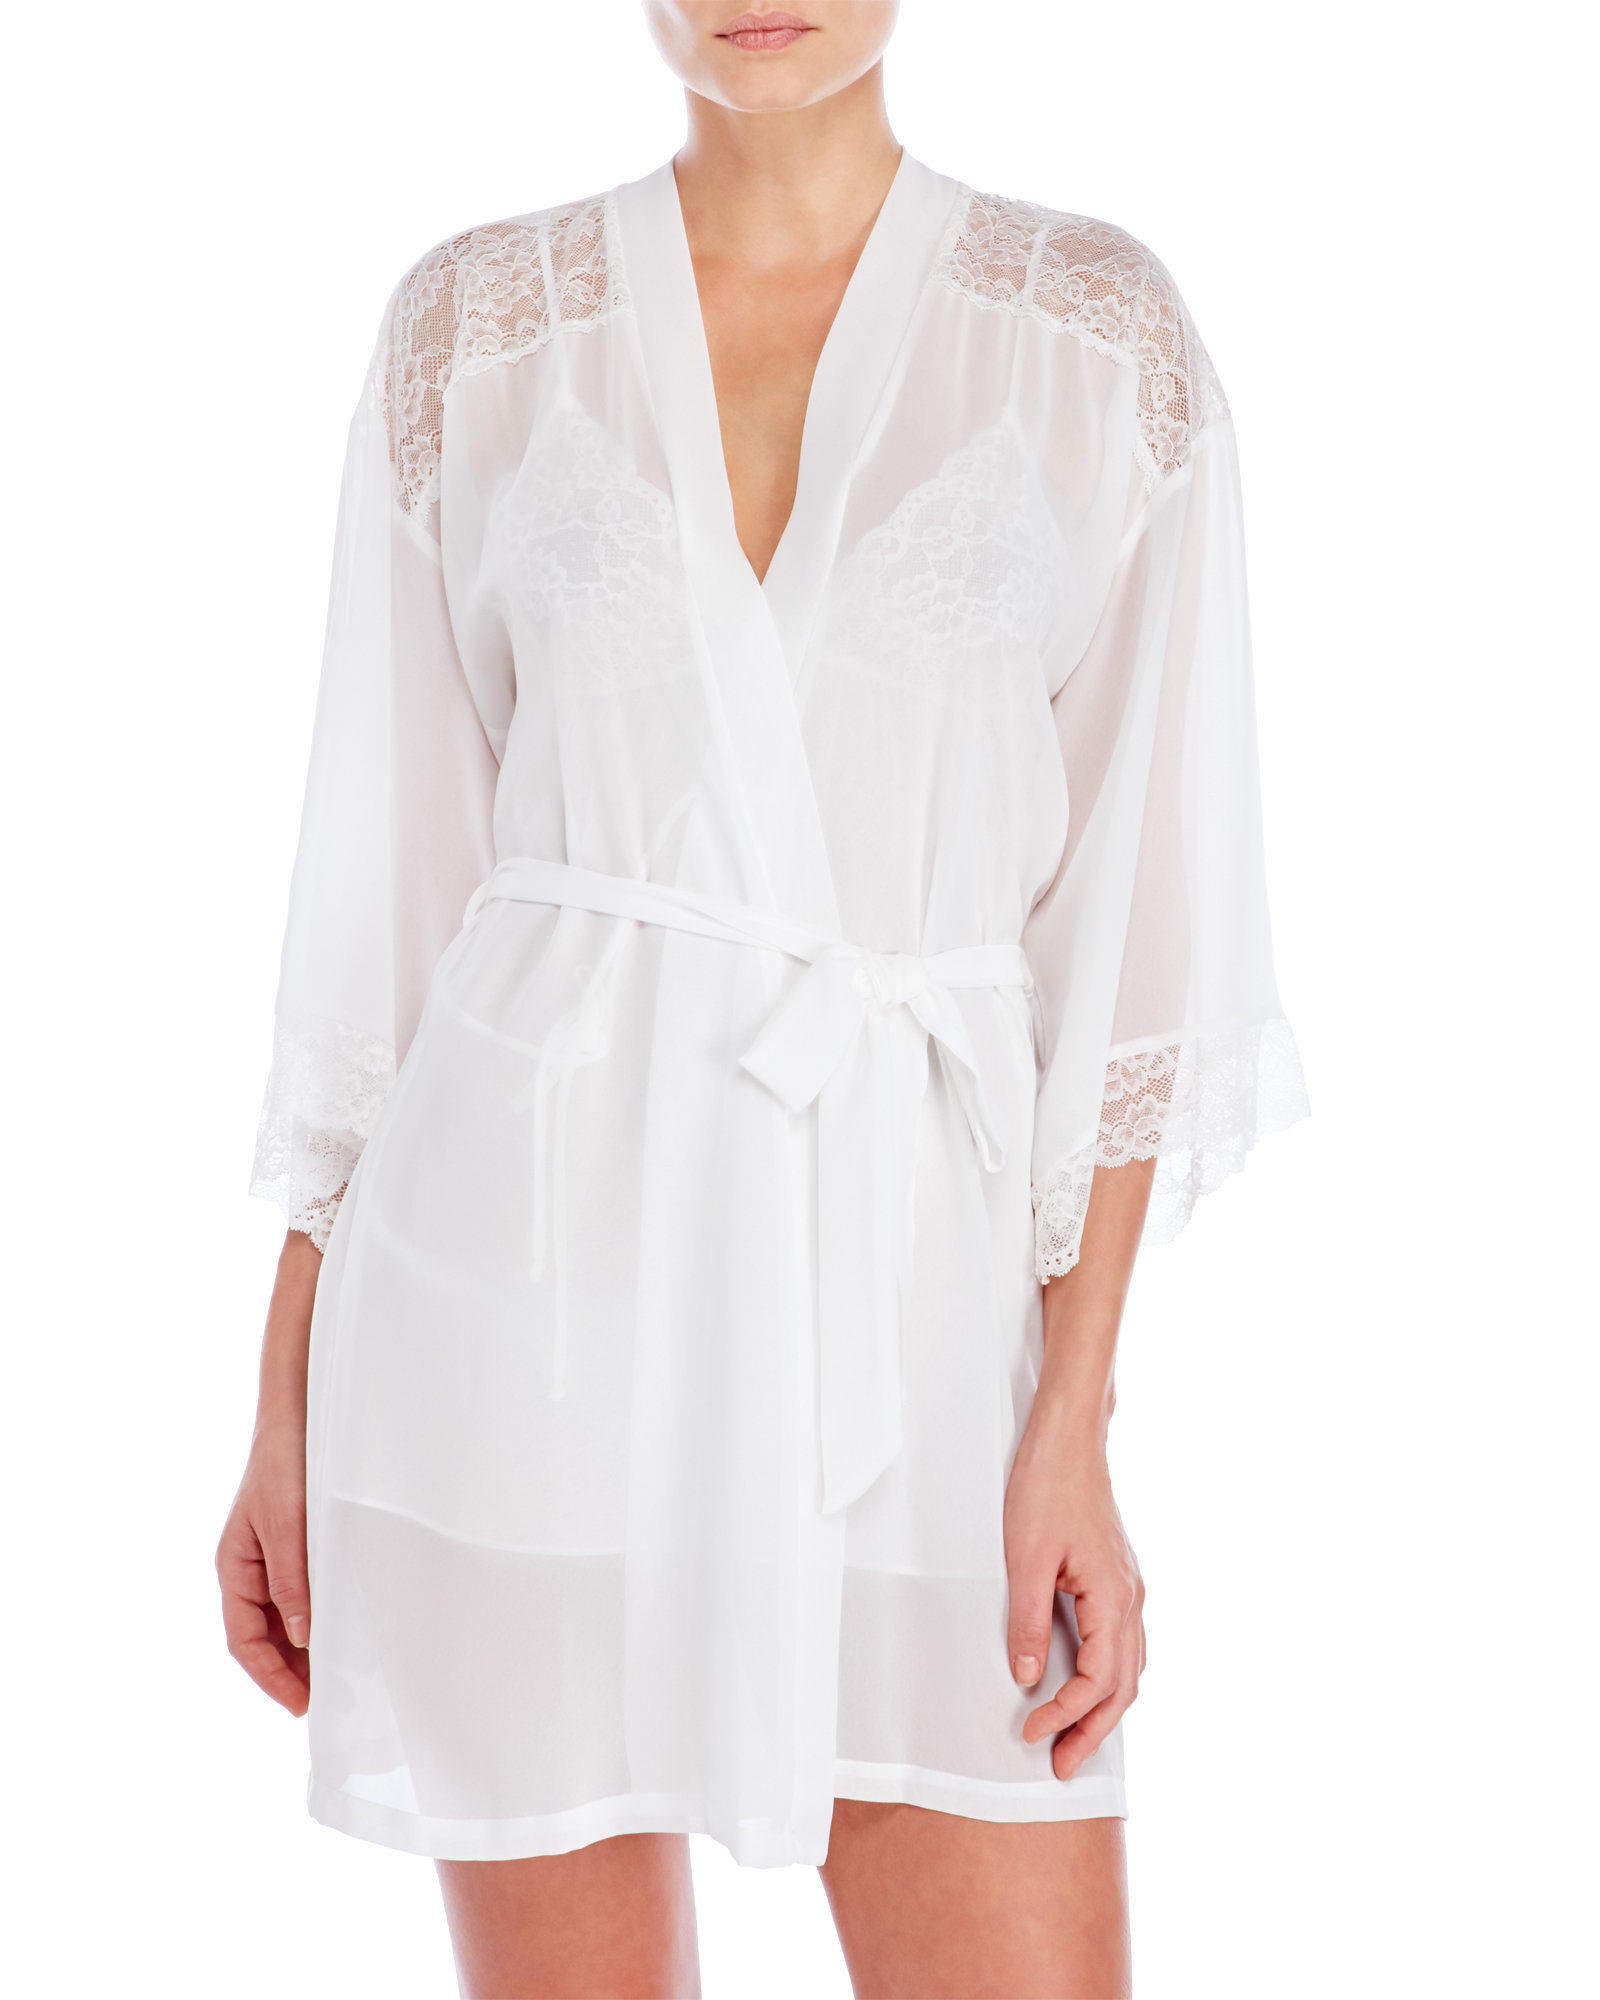 Lyst - In Bloom By Jonquil Bridal Chiffon   Lace Robe in White 0dbe56e74